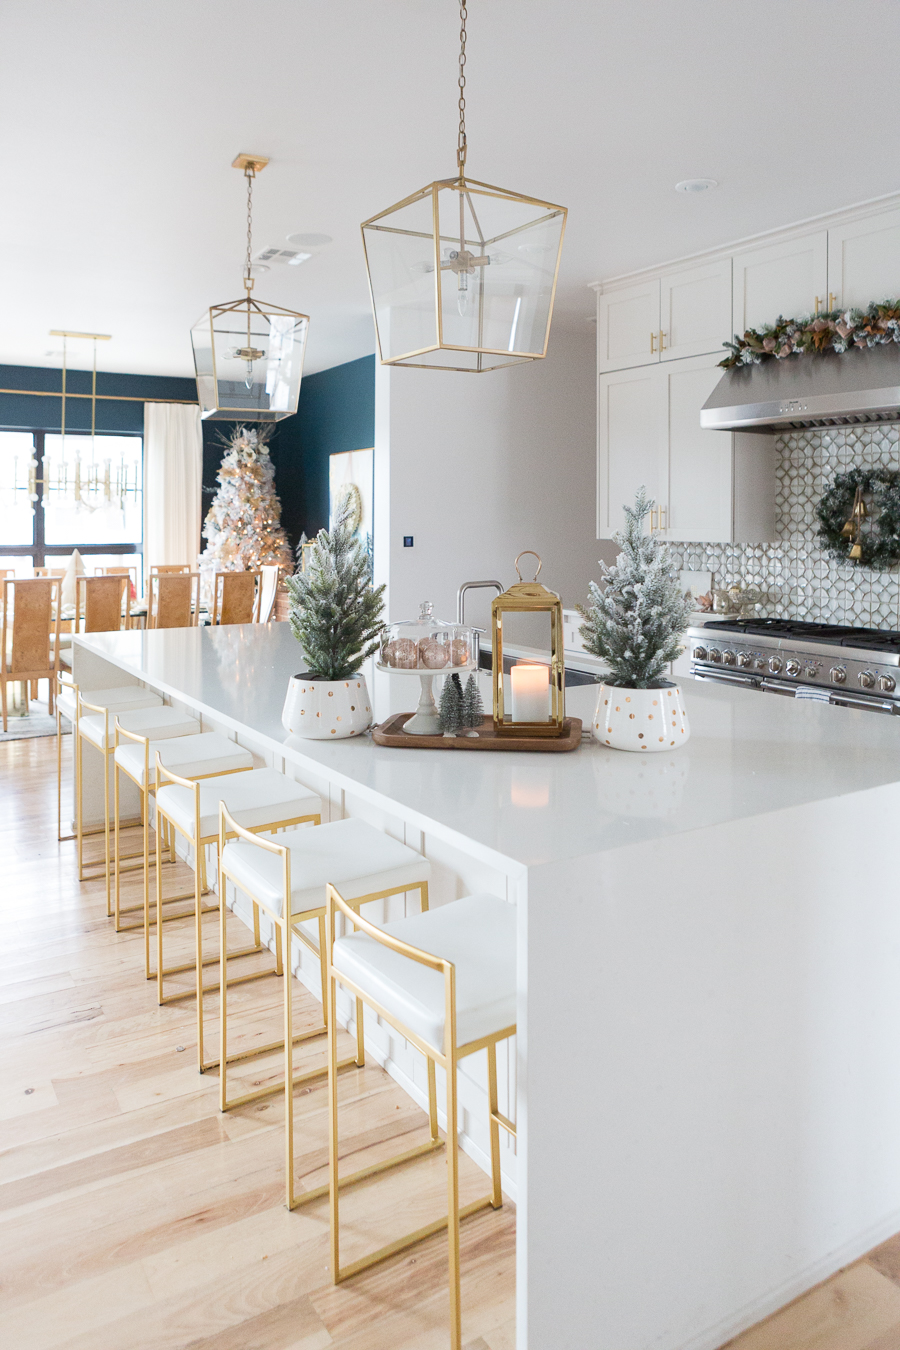 Budget Friendly Holiday Decor from Walmart white quartz waterfall island with gold bar stools and gold lanterns and a wood tray with a gold lantern and flocked Christmas trees in a polka dot vase